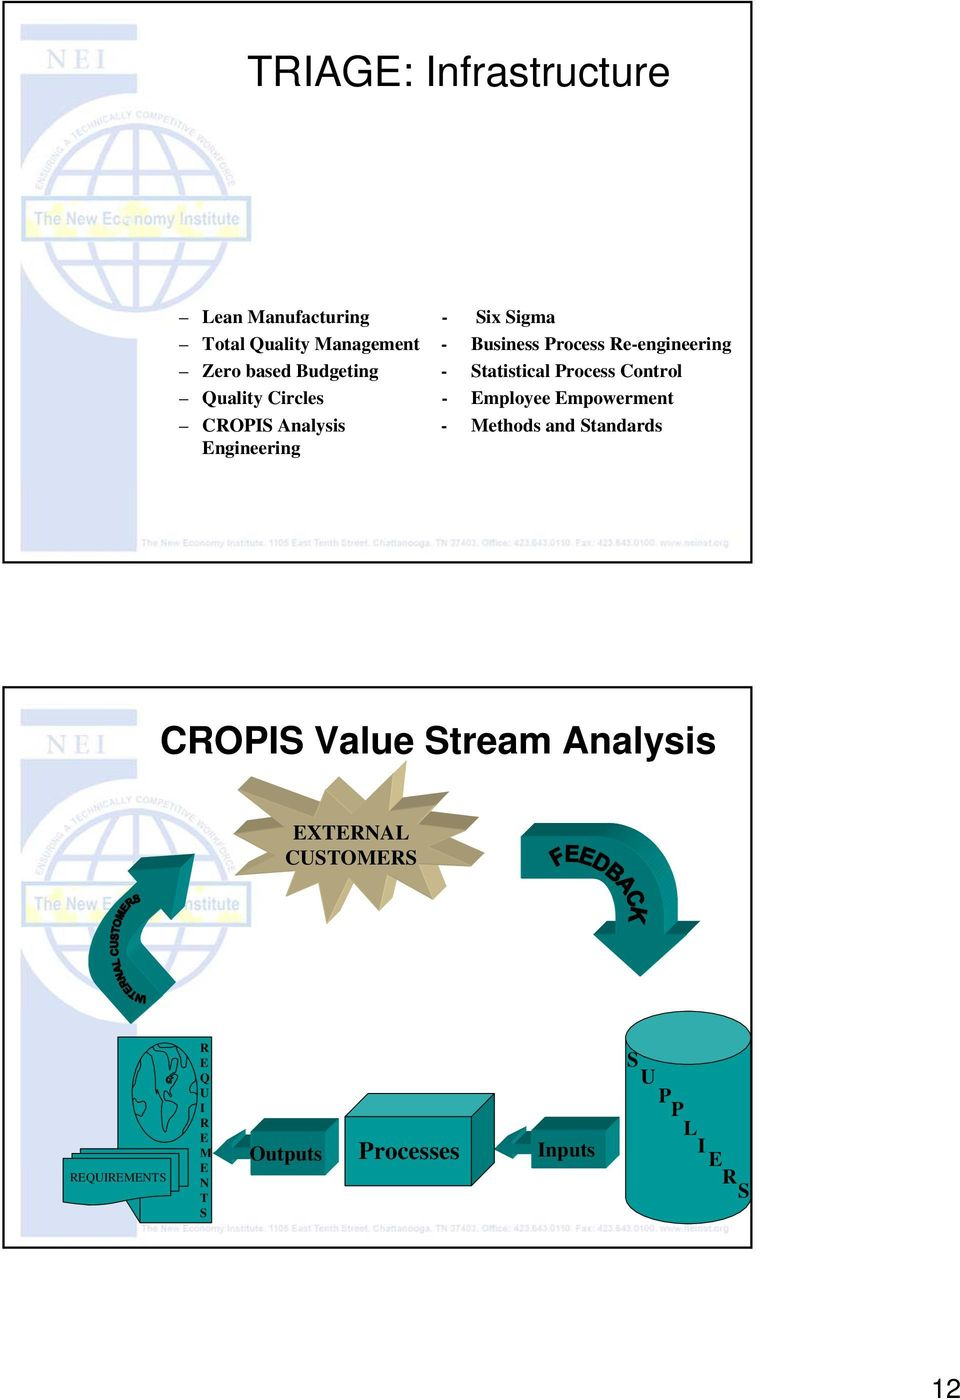 Employee Empowerment CROPIS Analysis - Methods and Standards Engineering CROPIS Value Stream